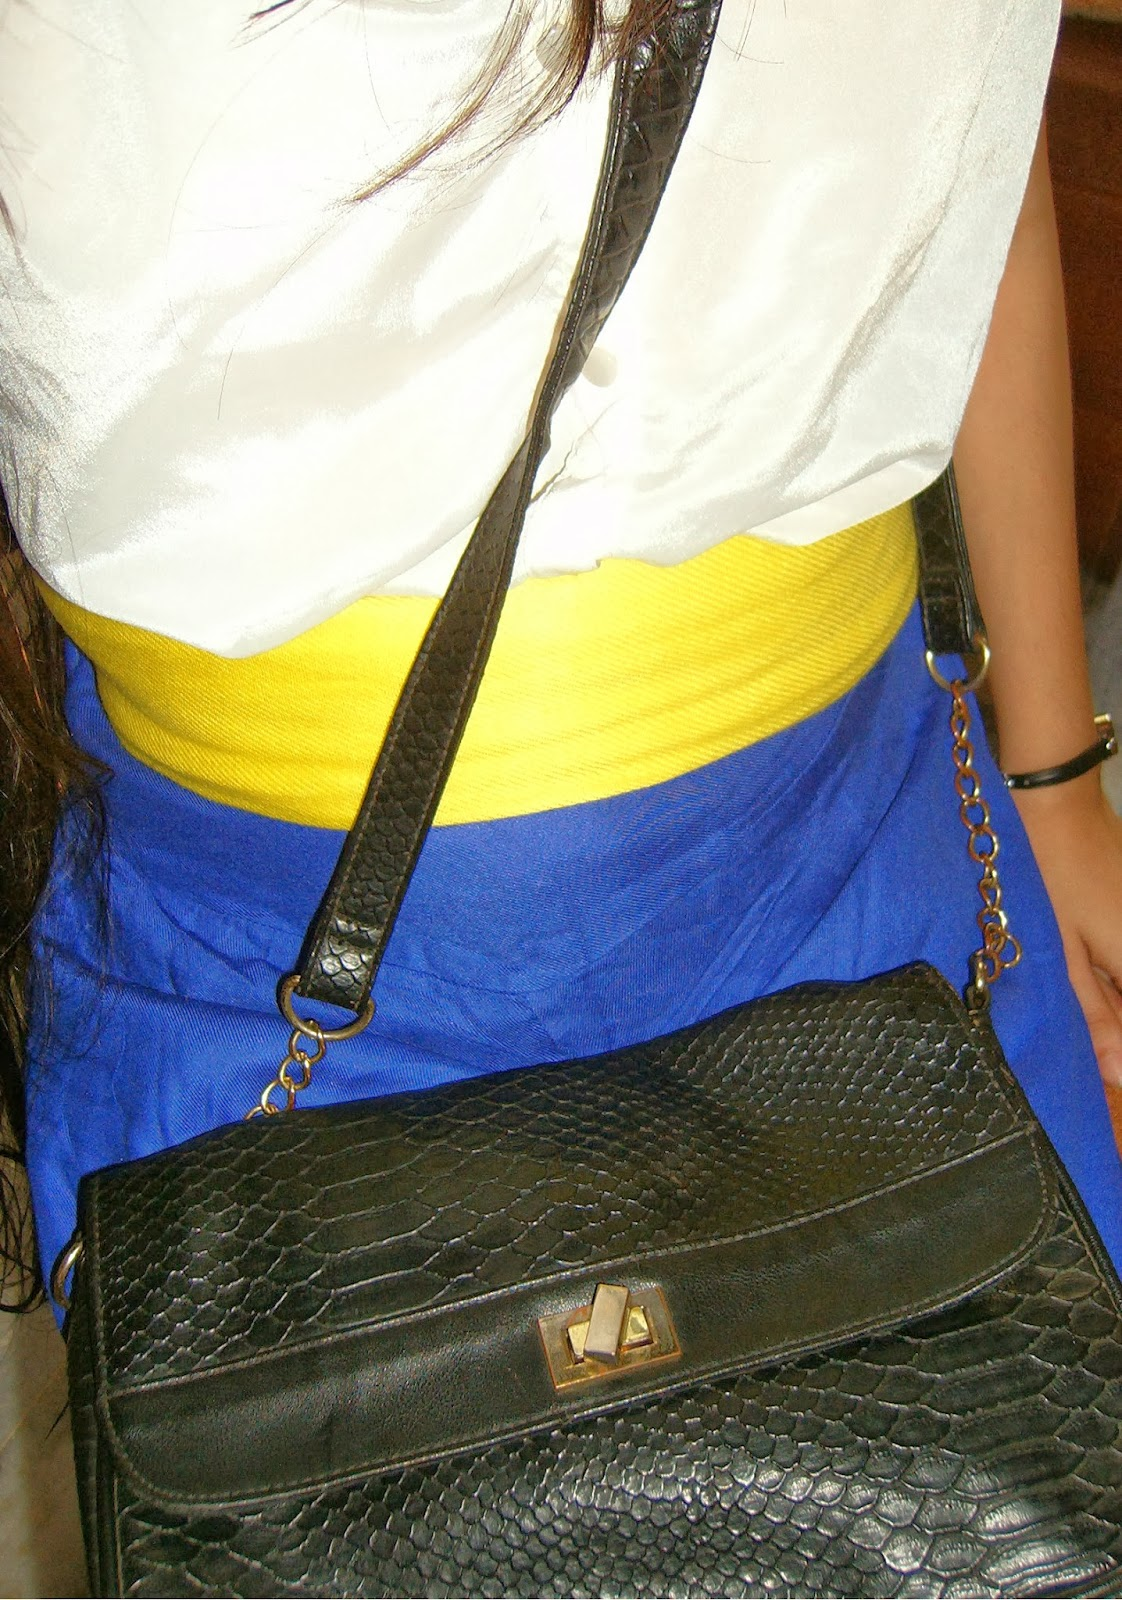 blue, white, yellow belt, scarf as a belt, crocodile bag, cross-body bag